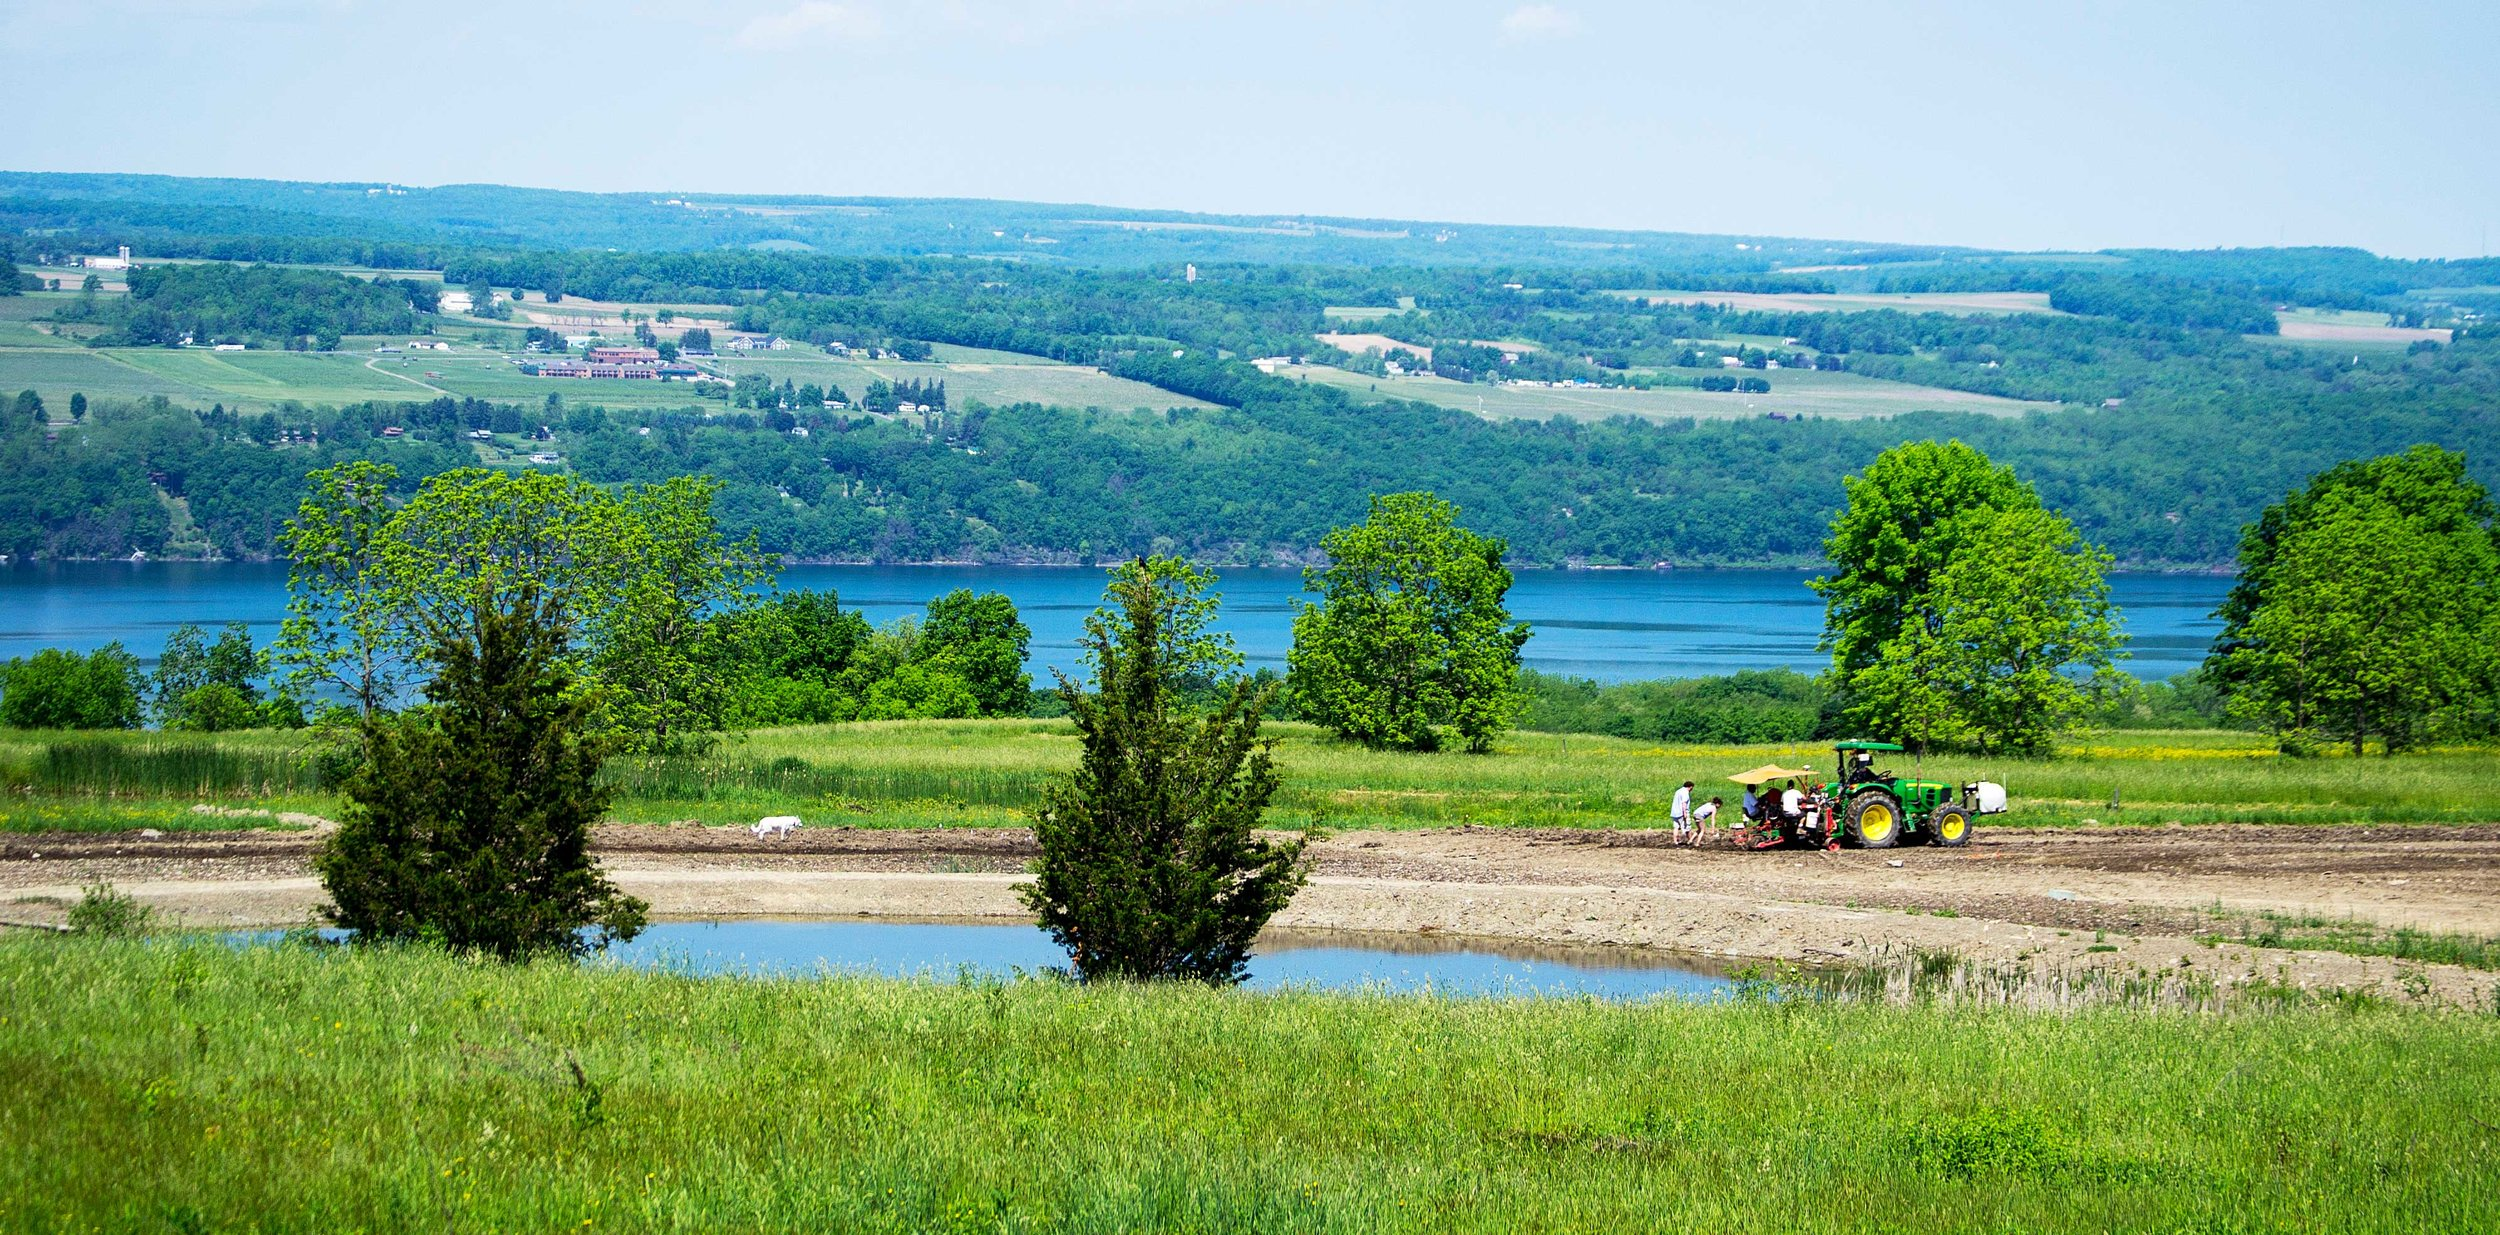 Forge Cellars Vineyard - Winery - Finger Lakes - New York - Seneca Lake